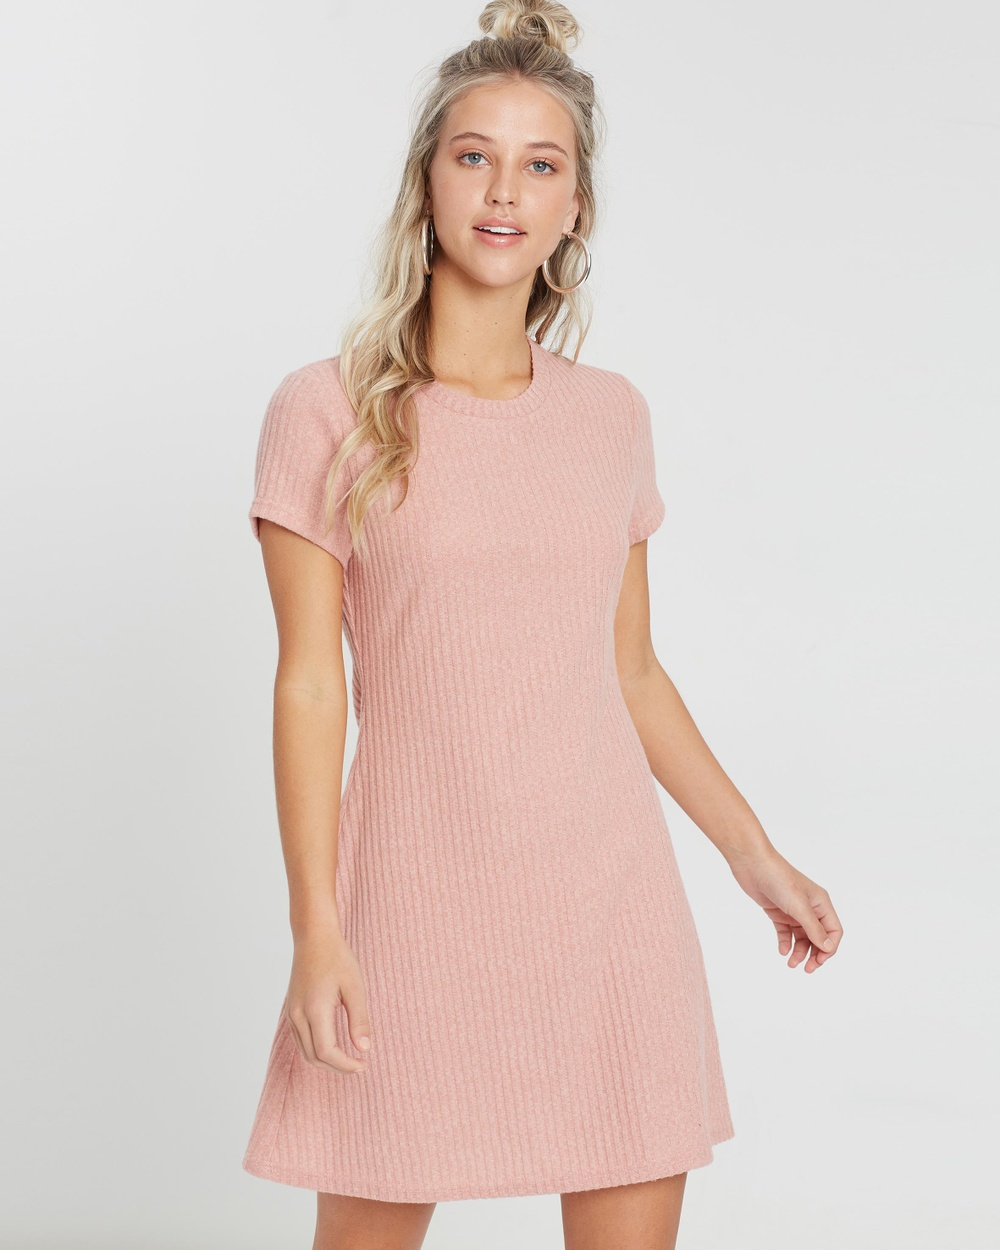 MINKPINK Gentle Brushed Rib Mini Dress Dresses Dusty Pink Gentle Brushed Rib Mini Dress